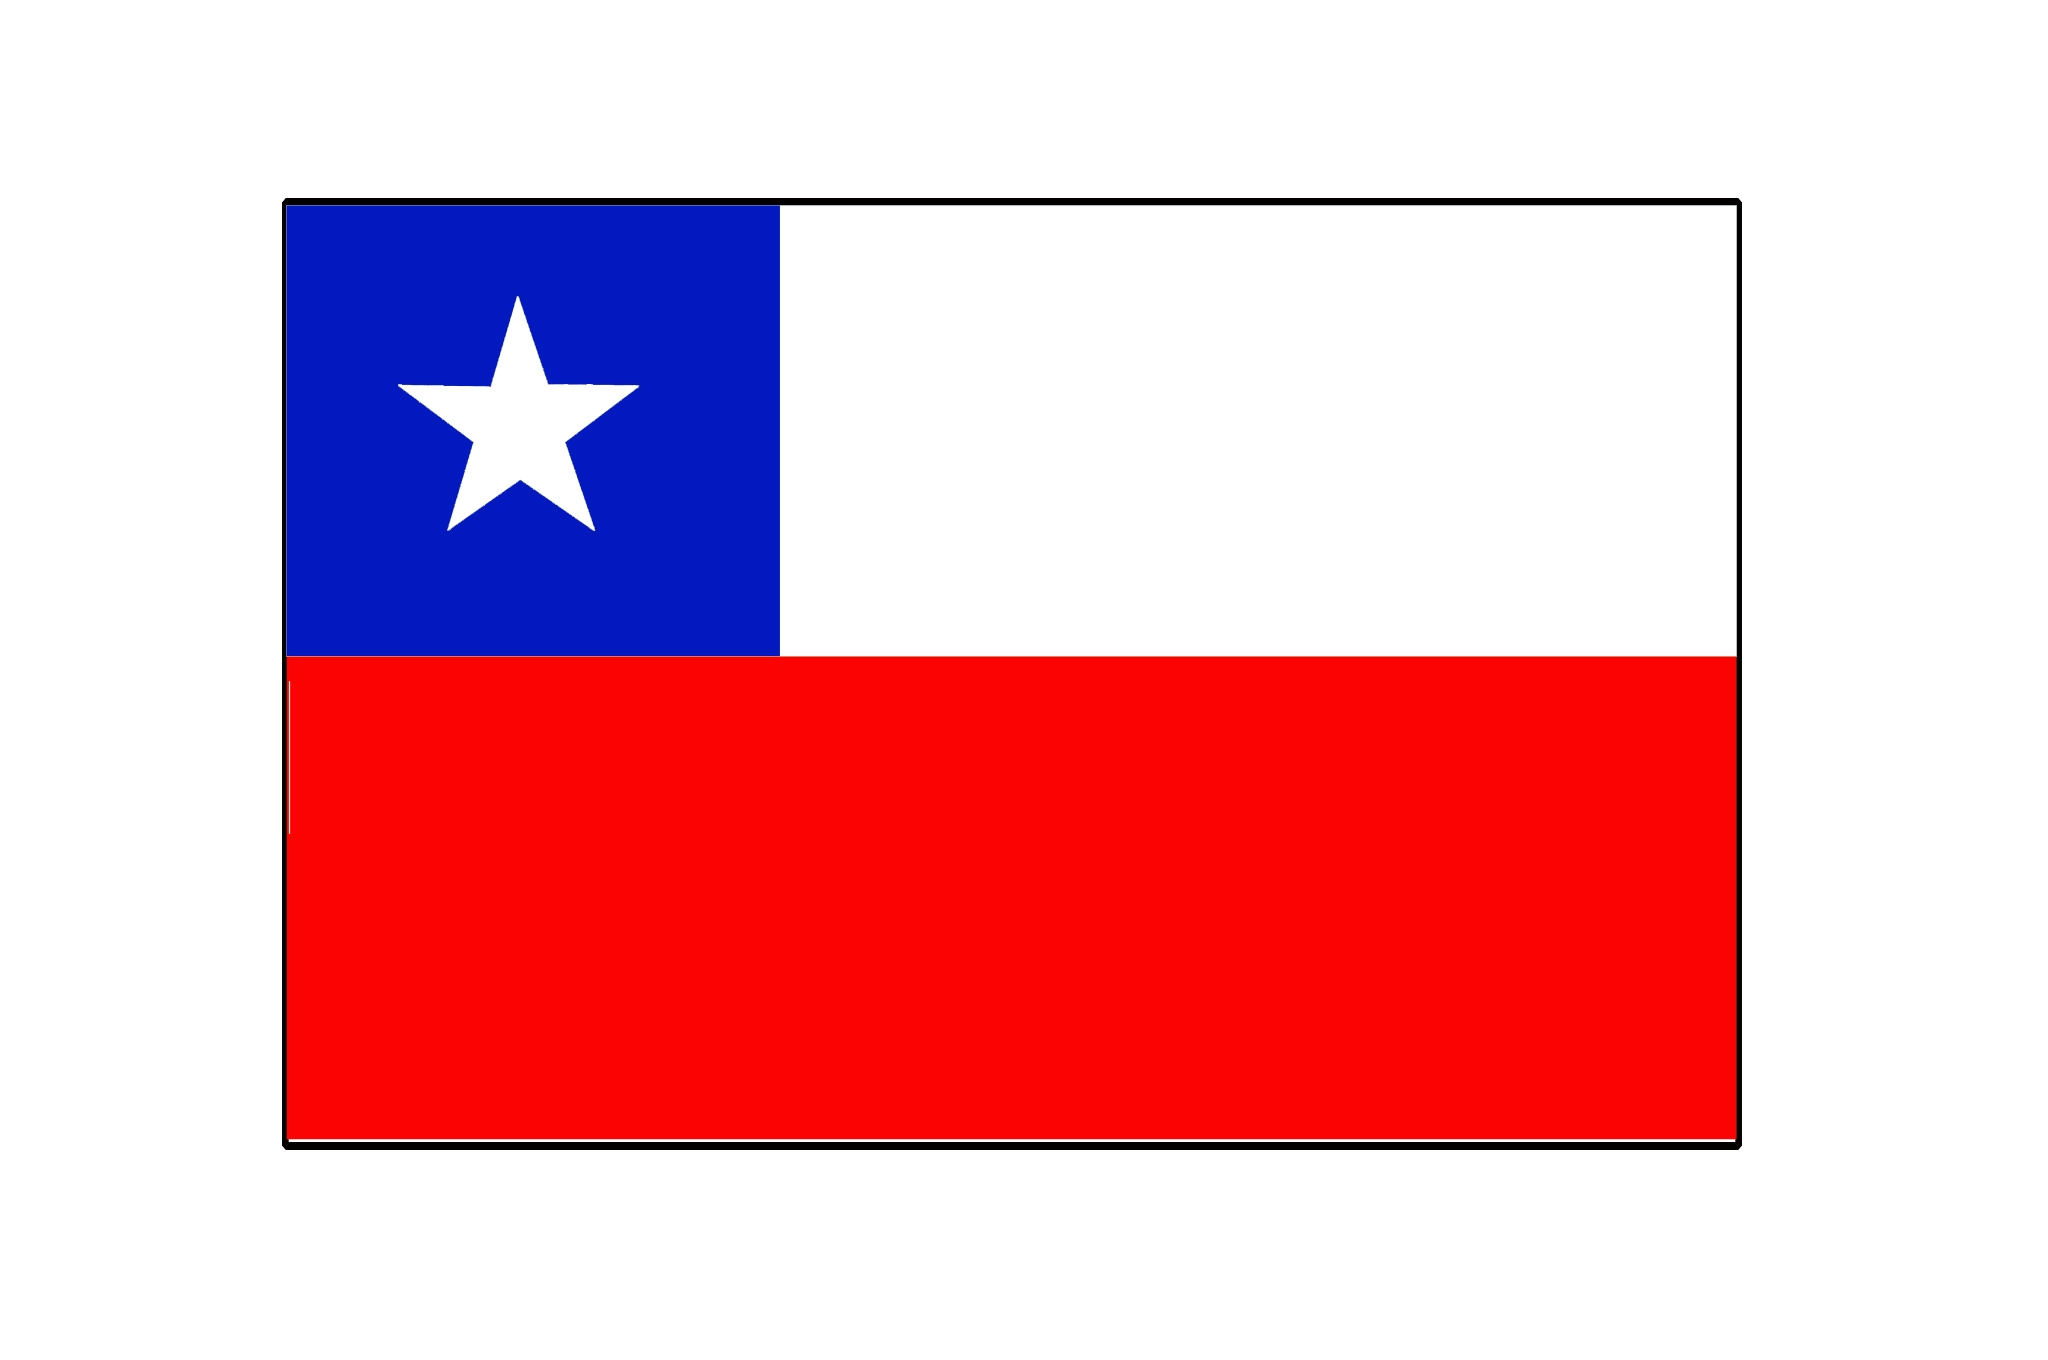 La Bandera De Chile Articles Recurso Jpg